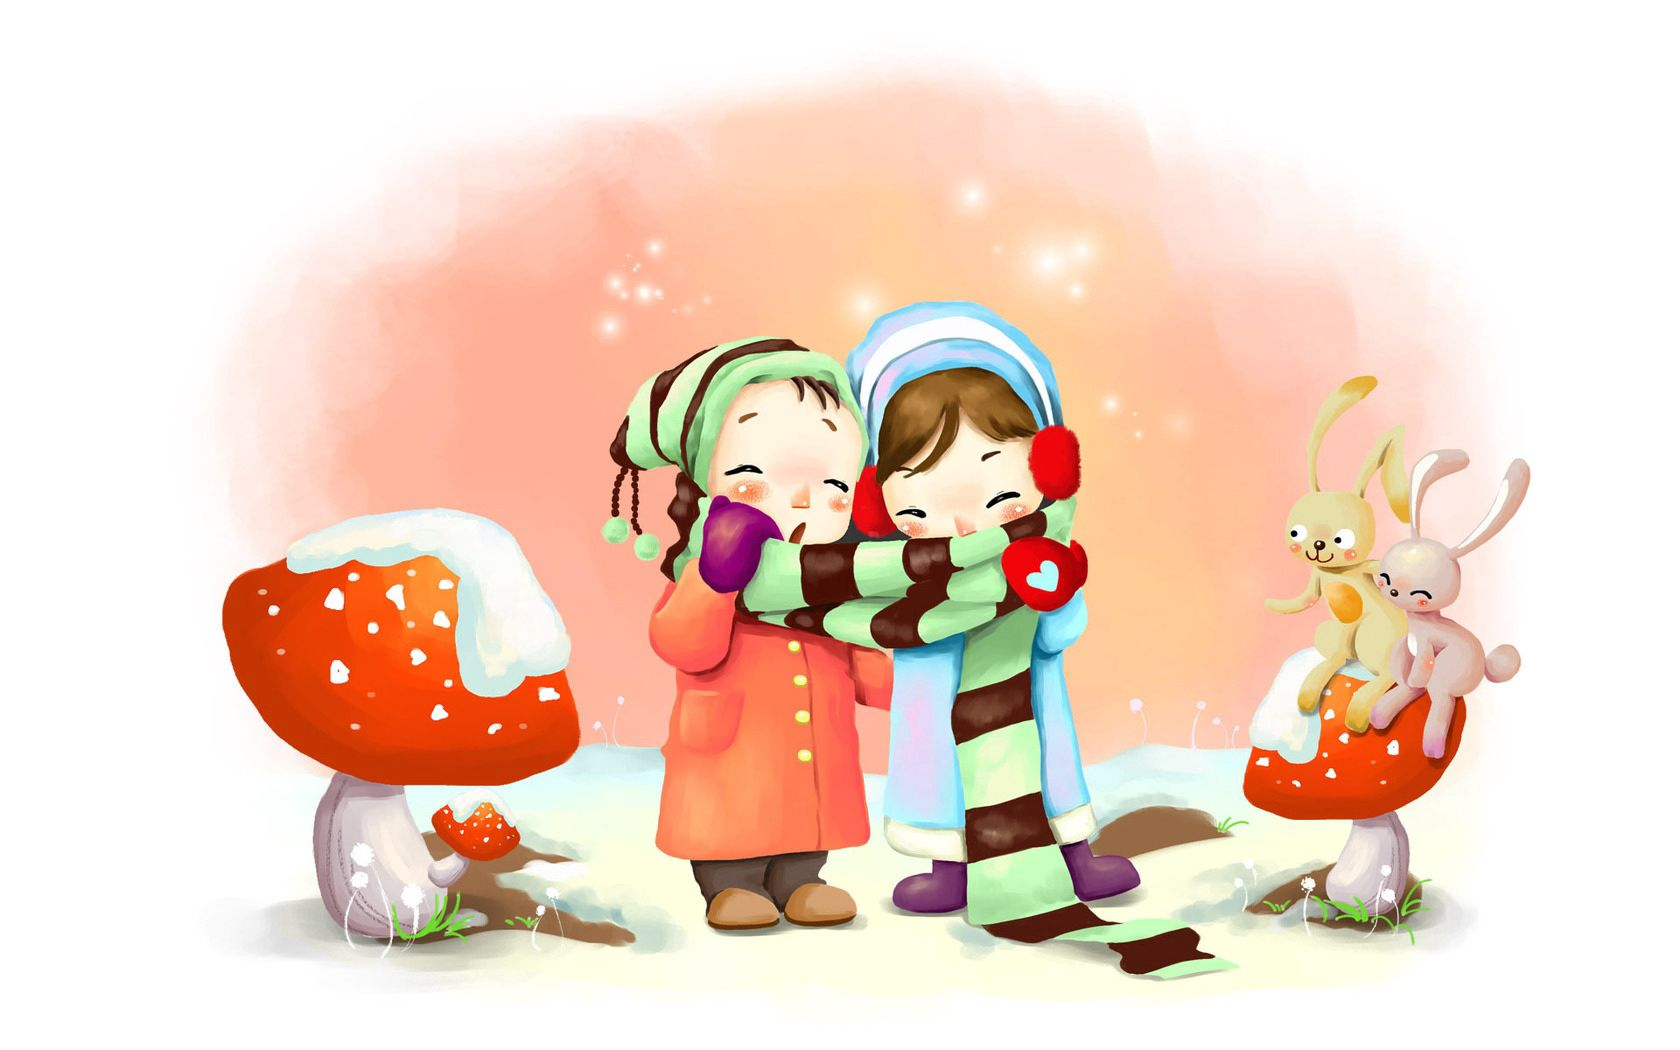 137908 Screensavers and Wallpapers Scarf for phone. Download Winter, Children, Mashrooms, Snowflakes, Miscellanea, Miscellaneous, Picture, Drawing, Breath, Scarf, Hares, Zaychata pictures for free